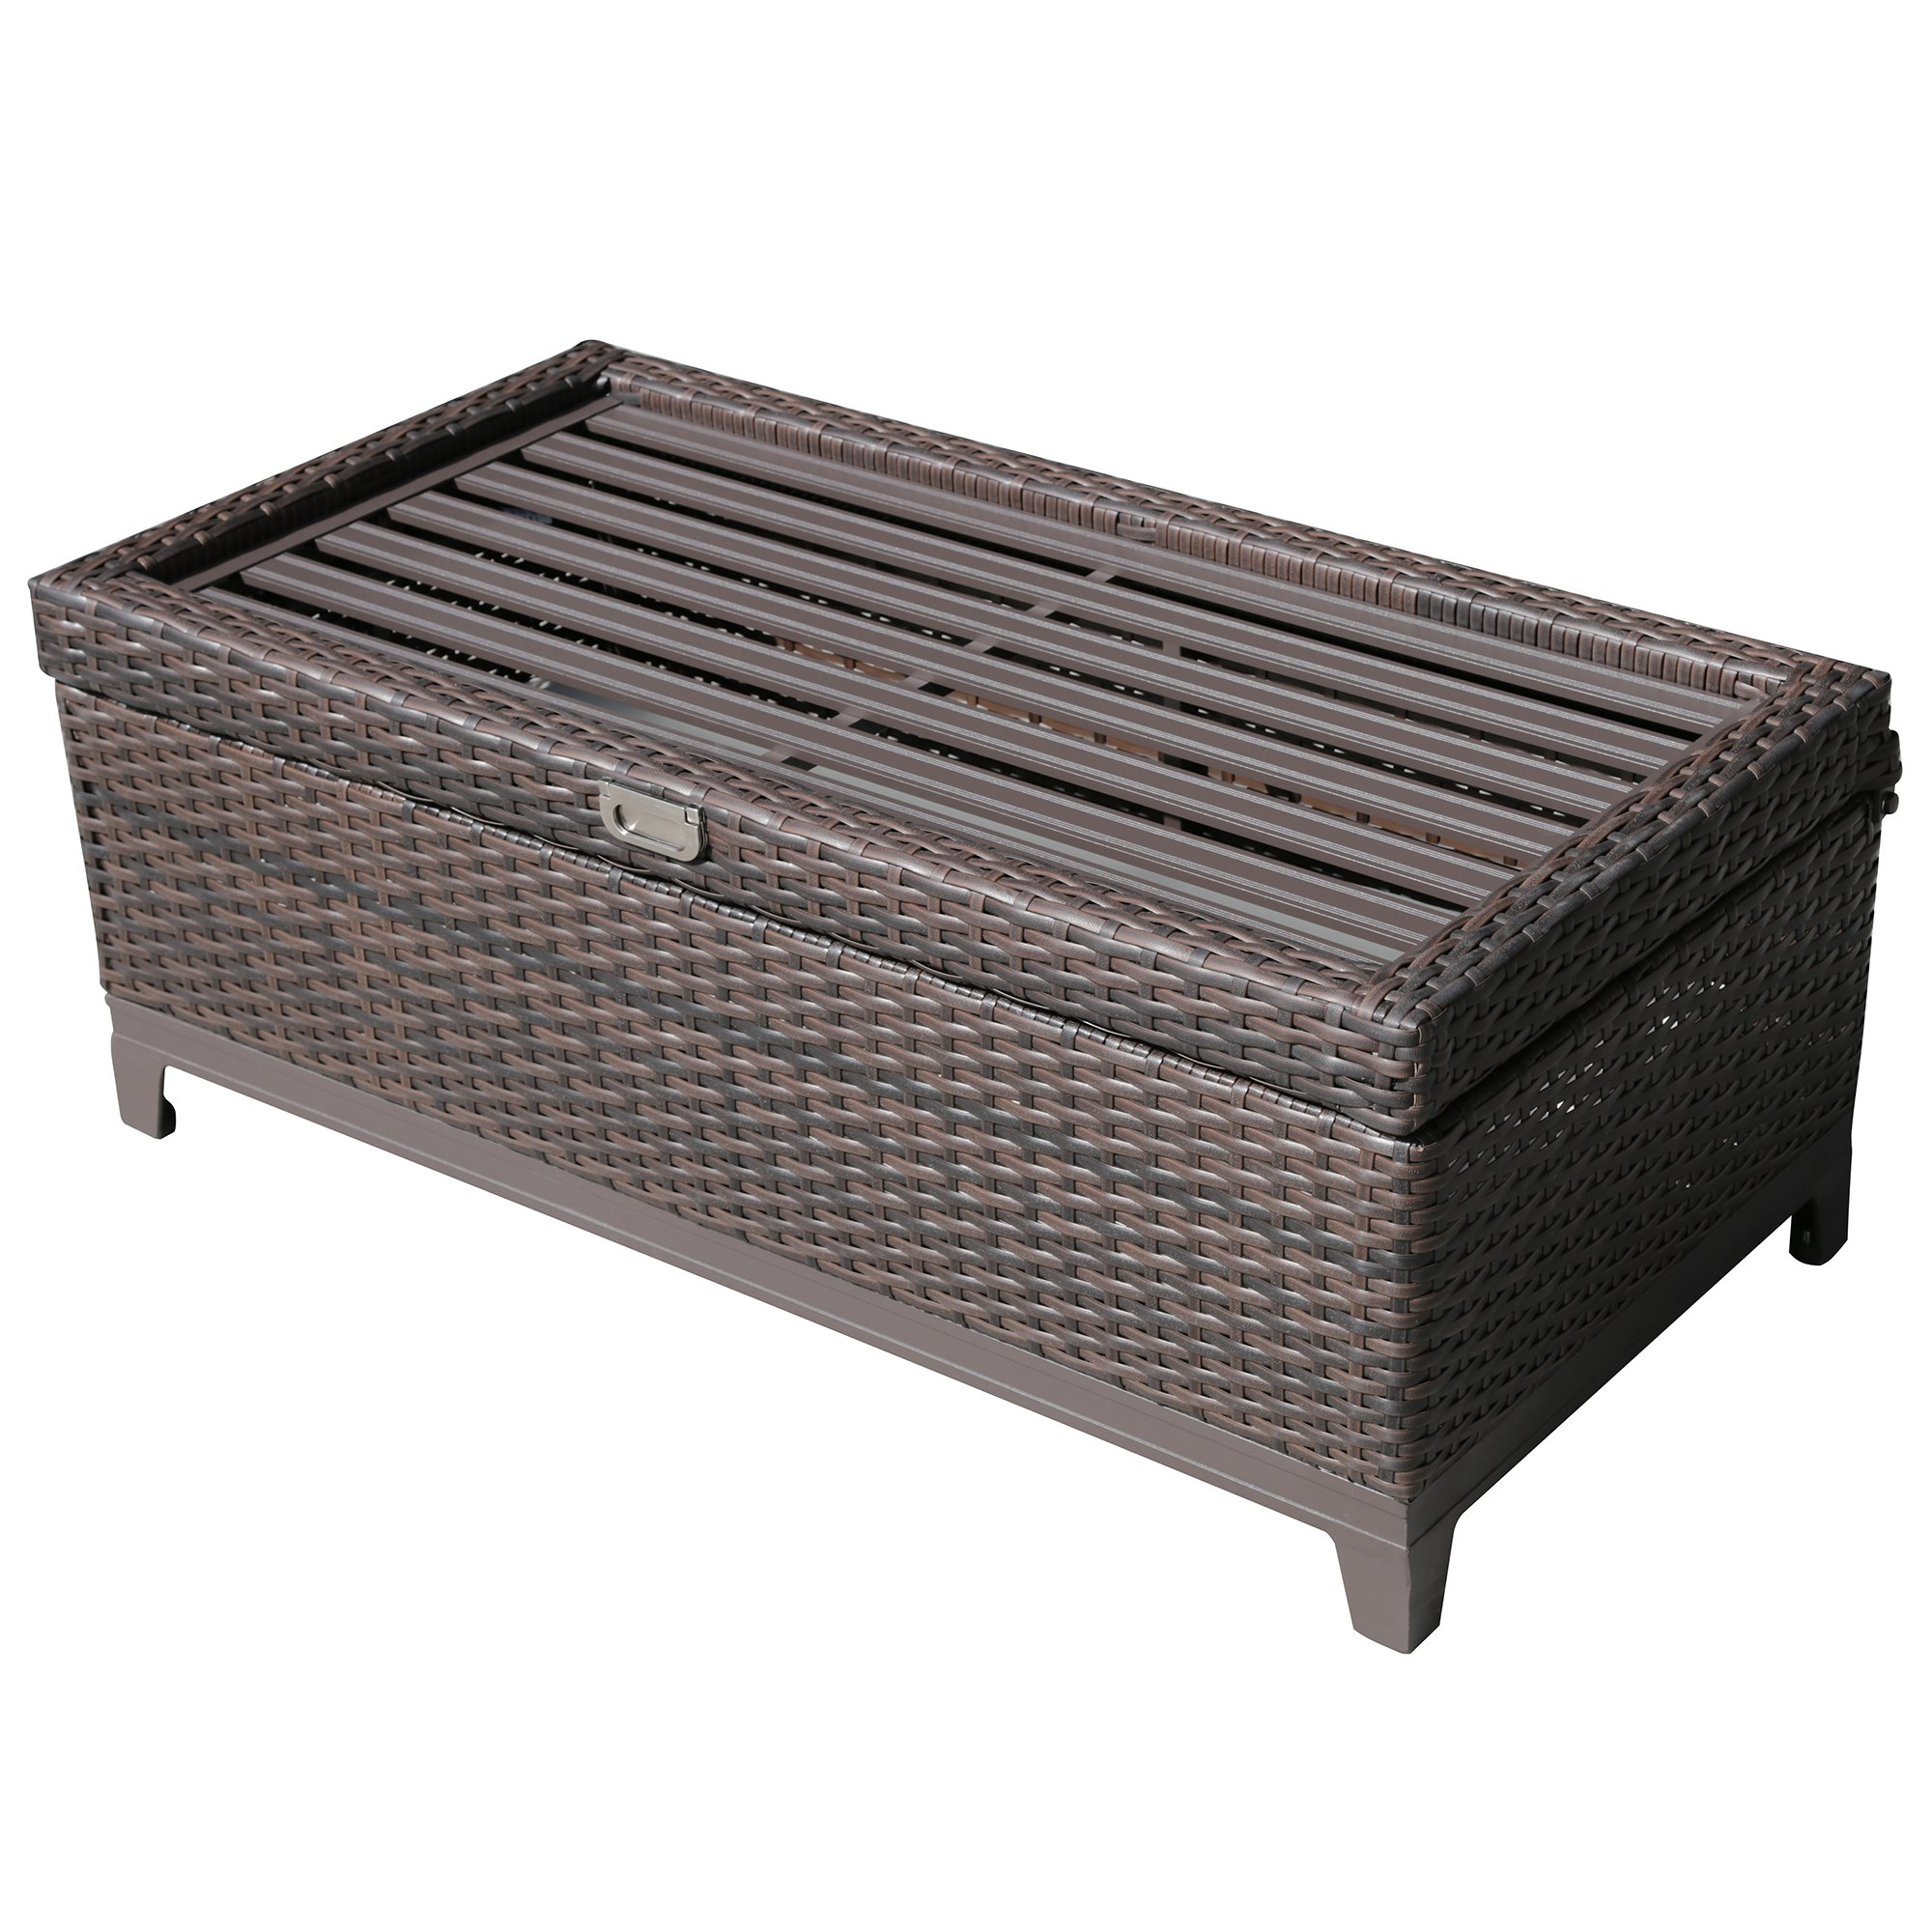 PATIOROMA Outdoor Patio Aluminum Frame Wicker Cushion Storage Ottoman Bench with Seat Cushion, Espresso Brown by PATIOROMA (Image #2)